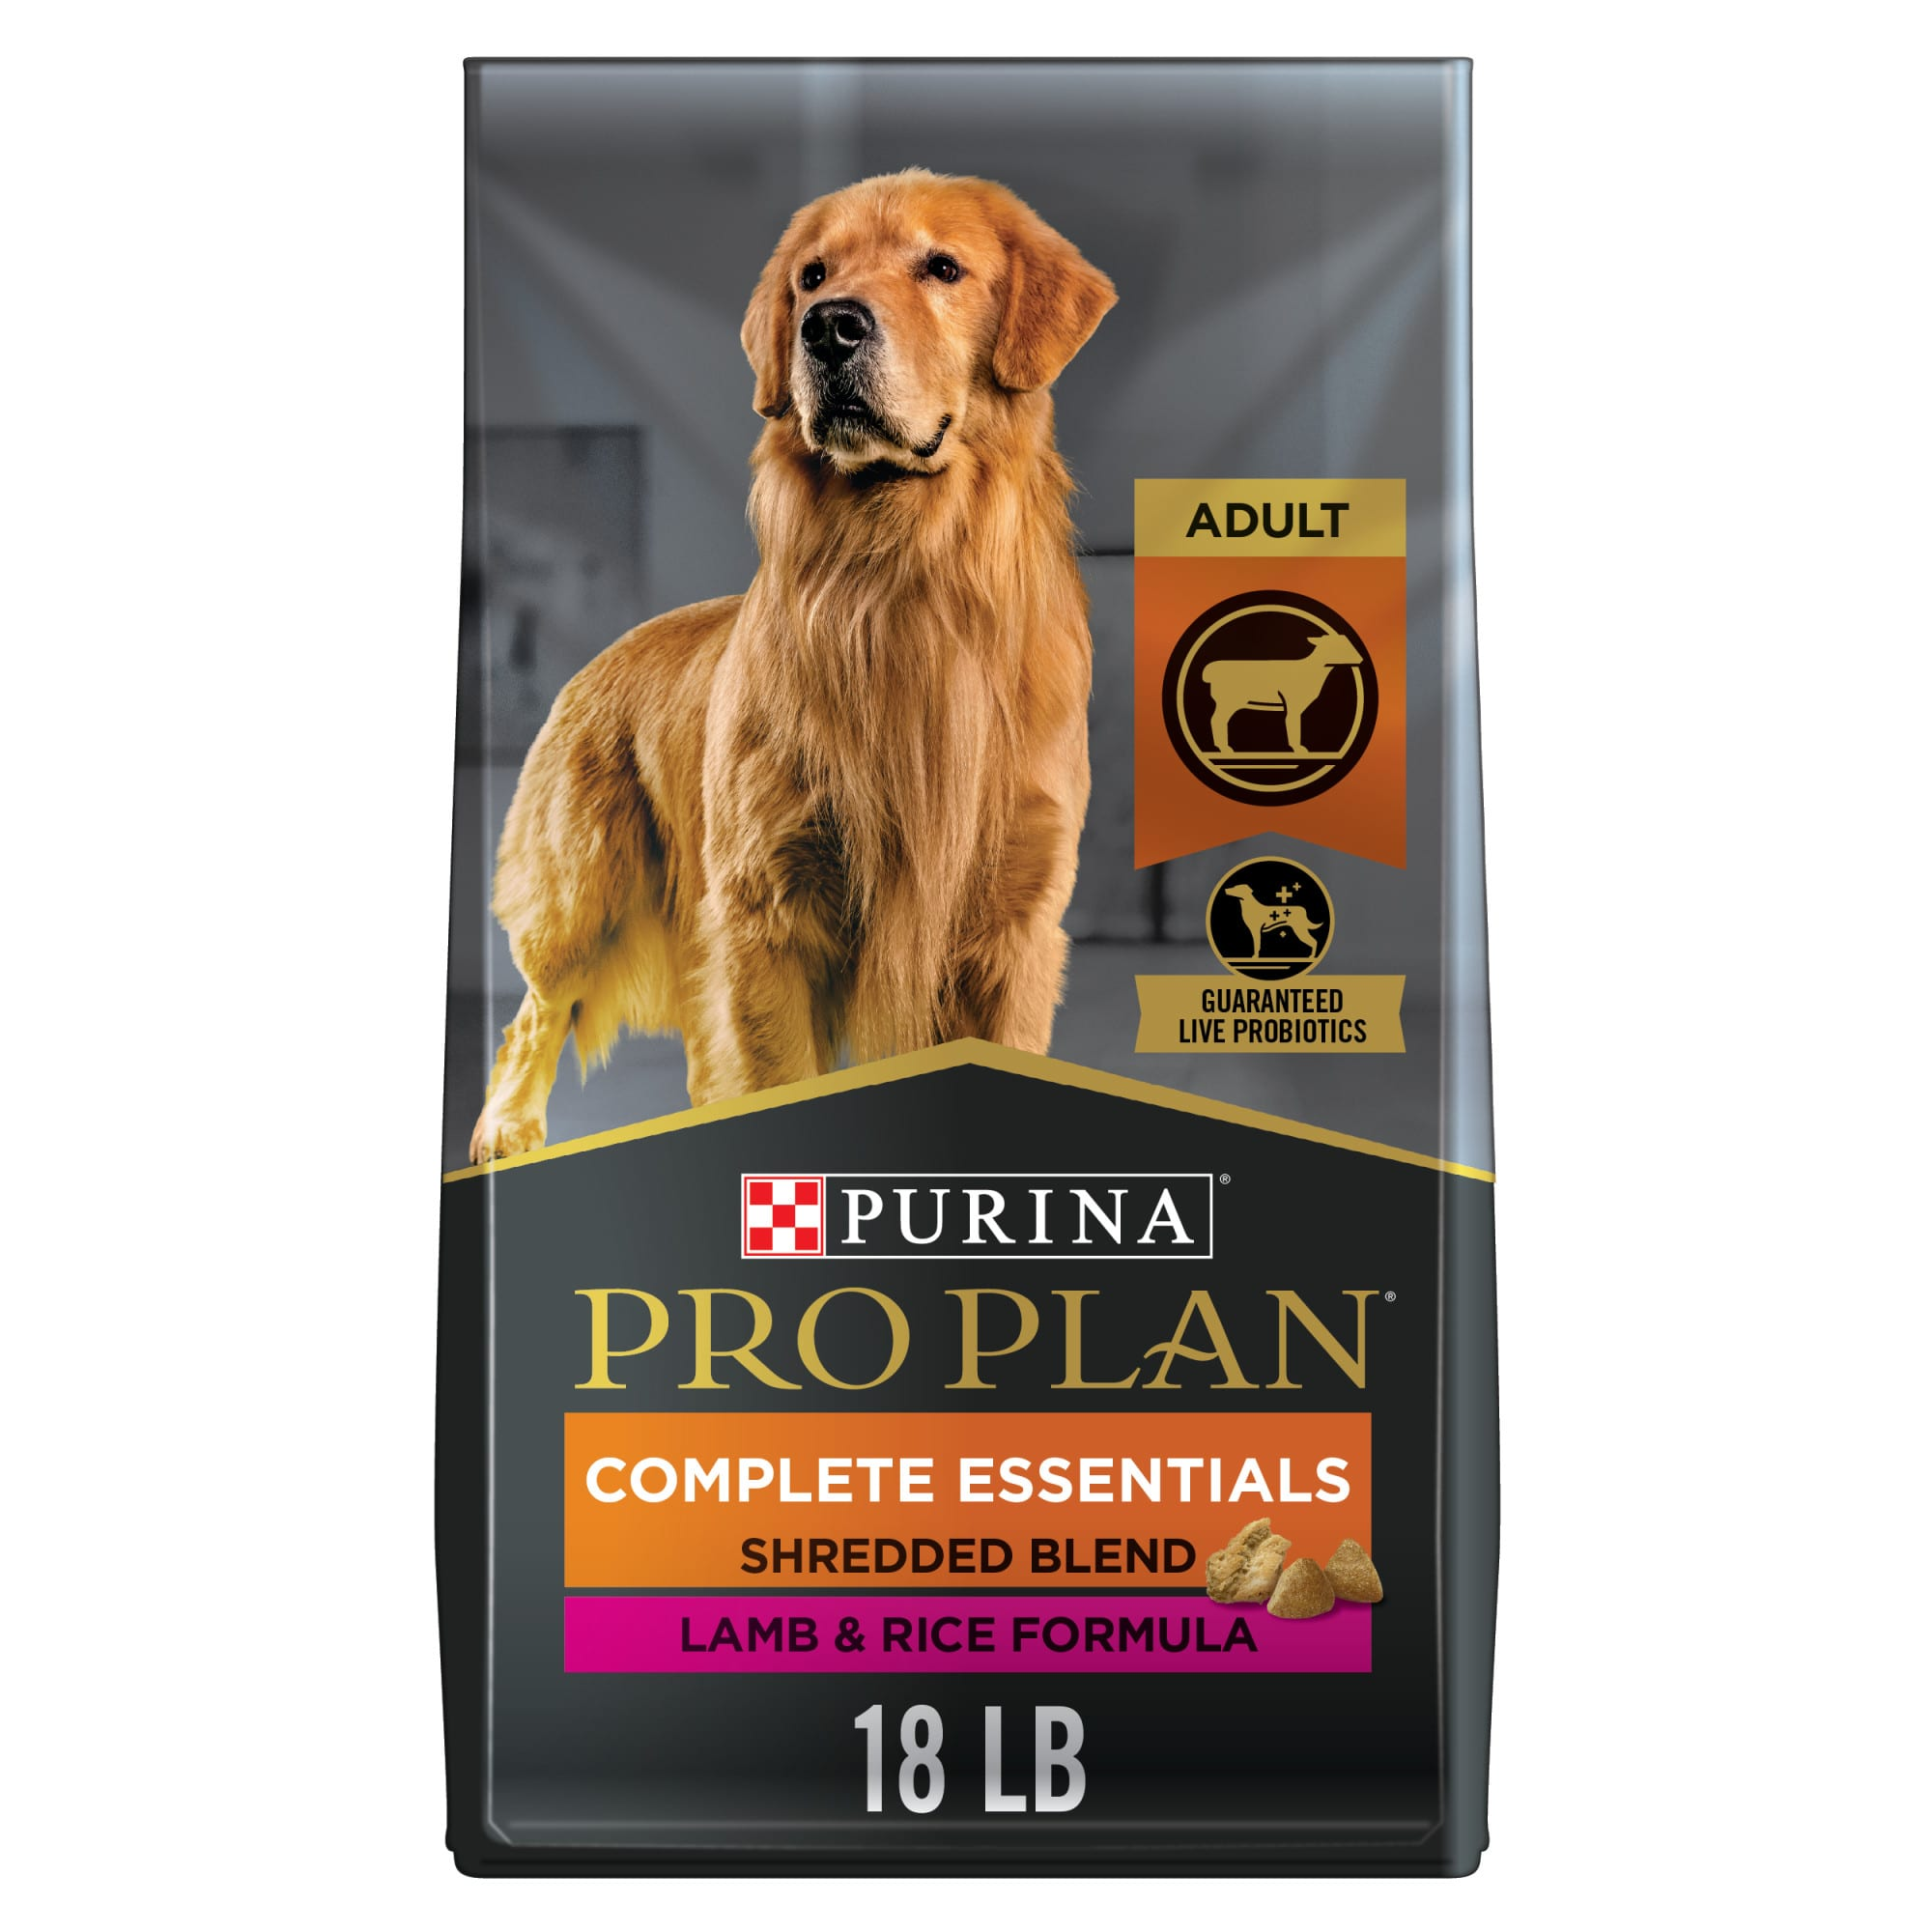 Purina Pro Plan Shredded Blend  for adults of all sizes contains real New Zealand and Australian lamb raised without hormones as the #1 ingredient in a blend of hard kibble and savory tender shredded pieces for an optimum combination of nutrition, taste and texture that dogs love. The optimal protein to fat ratio helps your dog maintain lean muscle mass and a healthy body condition. We also added wholesome grains, including rice and whole wheat, which are highly digestible sources of carbohydrates for energy and quality fiber, natural prebiotics and live probiotics to support digestive and immune health and essential antioxidants for overall health and wellness.